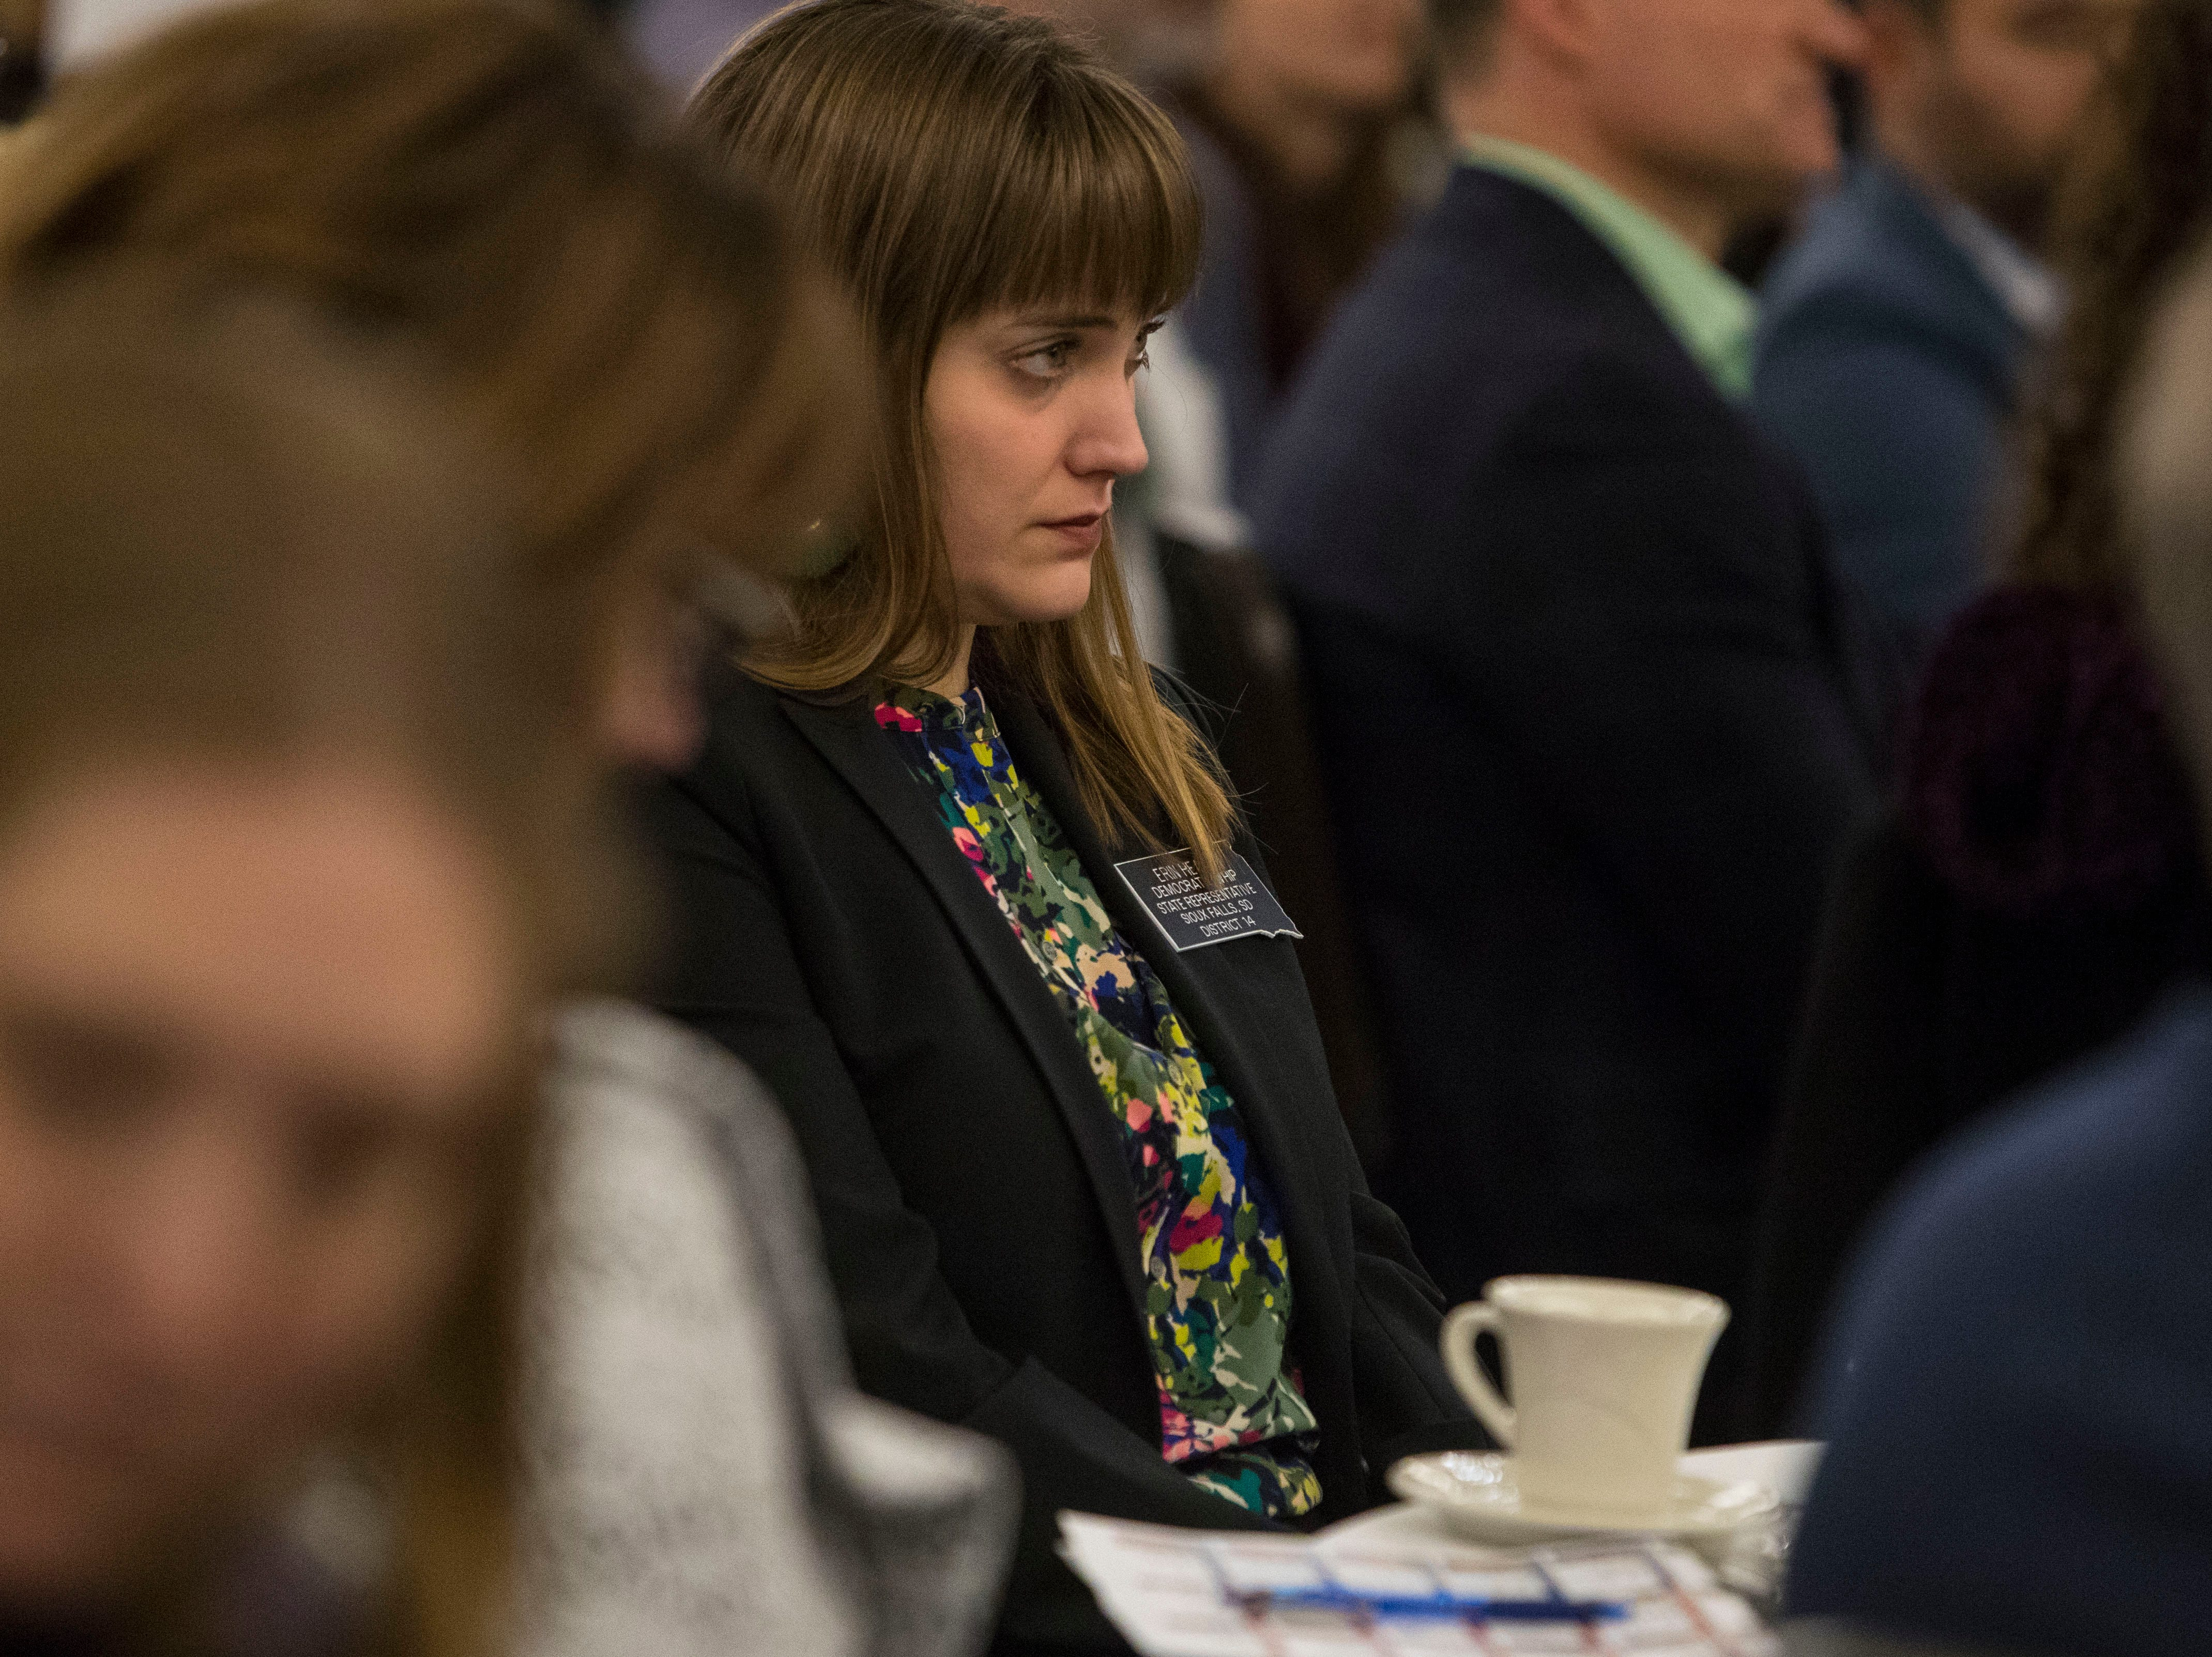 Rep. Erin Healy, District 14, attends the Chamber of Commerce legislative breakfast, Thursday, Jan. 3, 2019 at the Best Western Plus Ramkota Hotel in Sioux Falls, S.D.